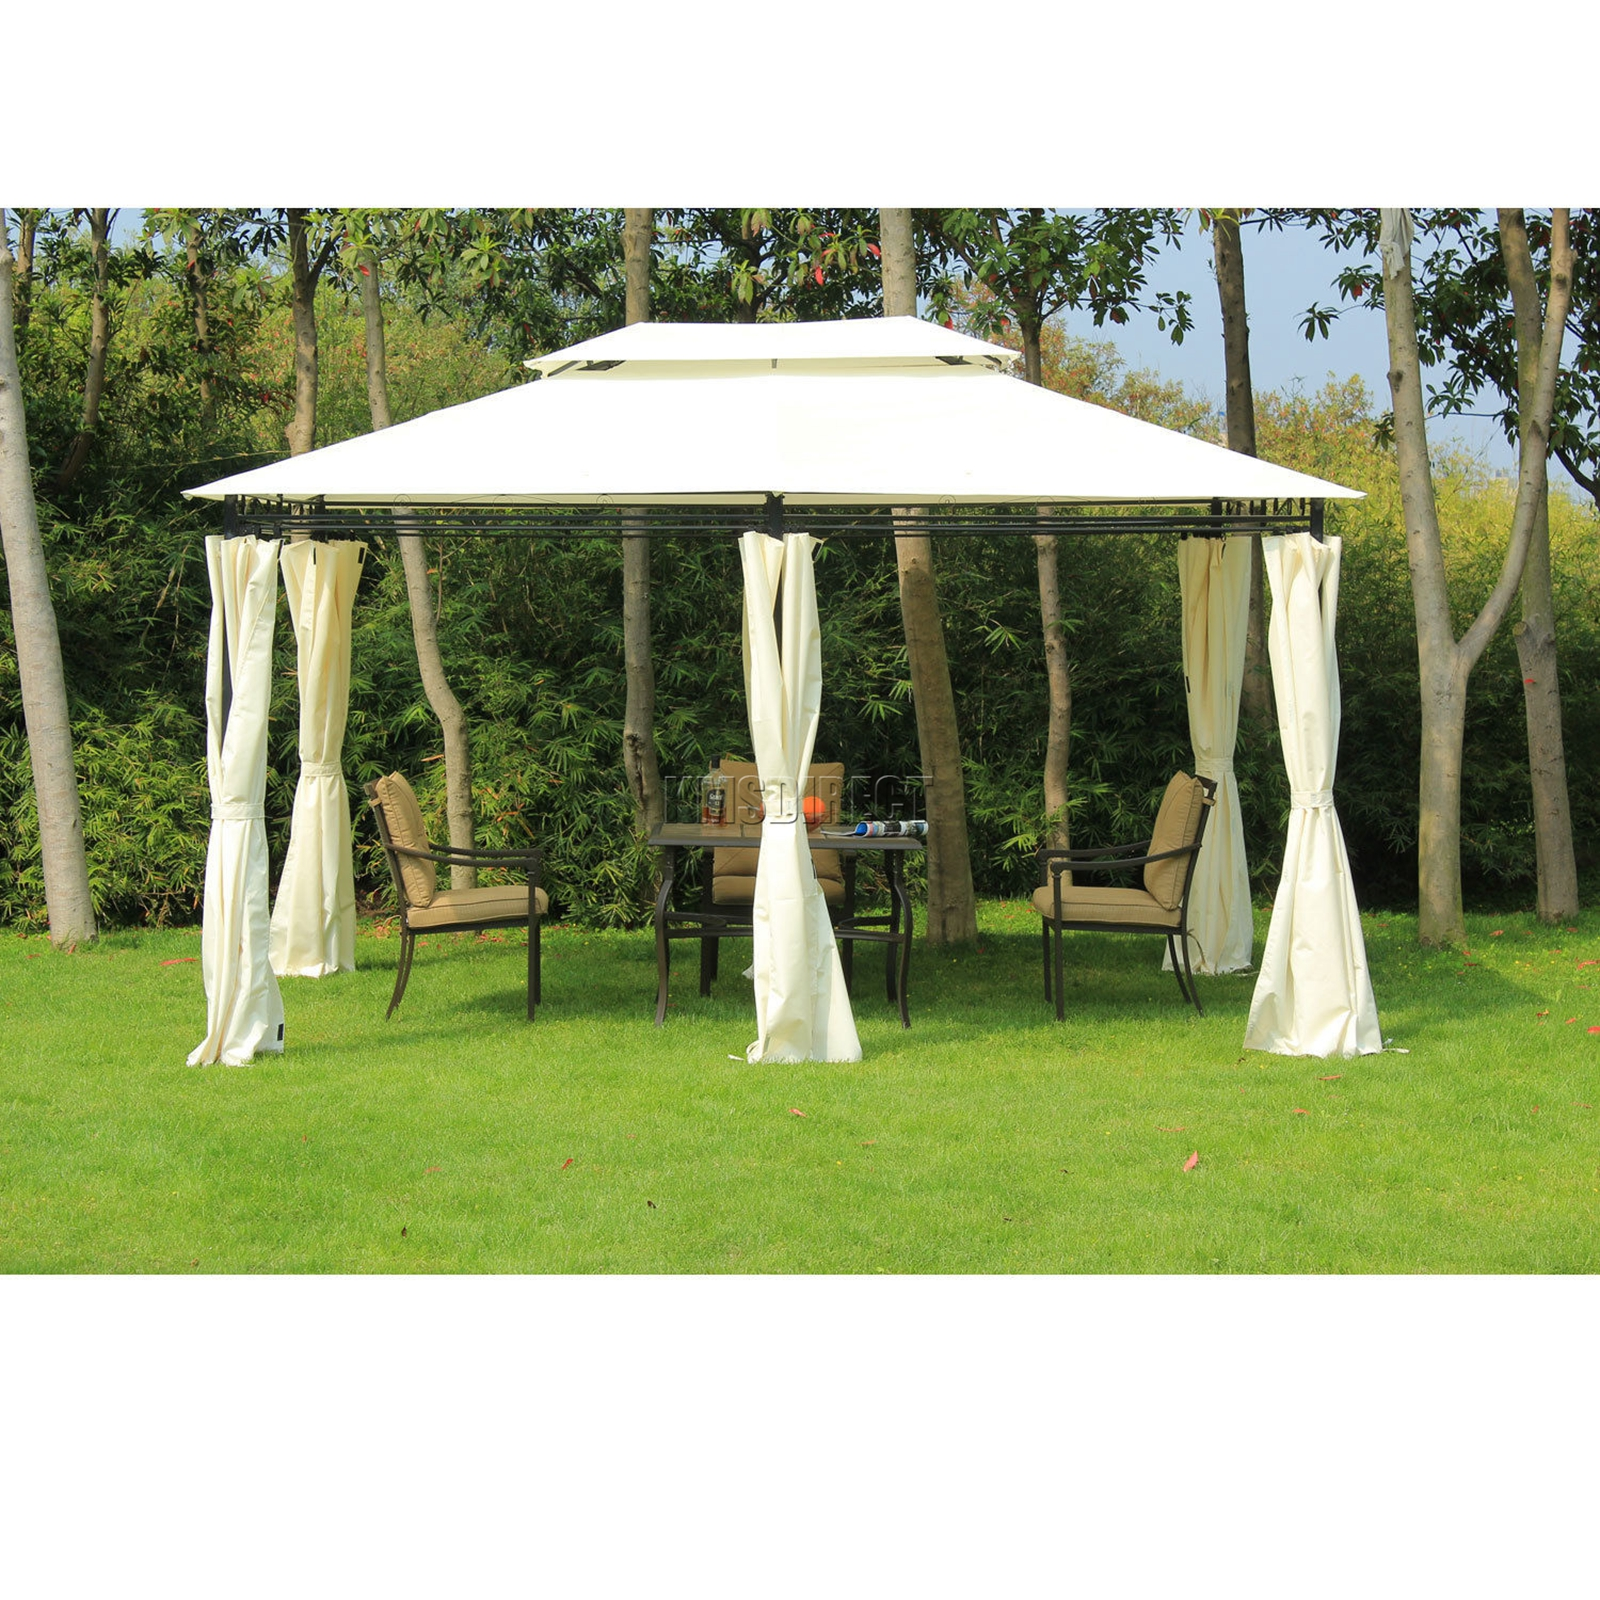 foxhunter garden pavilion gazebo shelter beige party tent marquee 3m x 4m x ebay. Black Bedroom Furniture Sets. Home Design Ideas